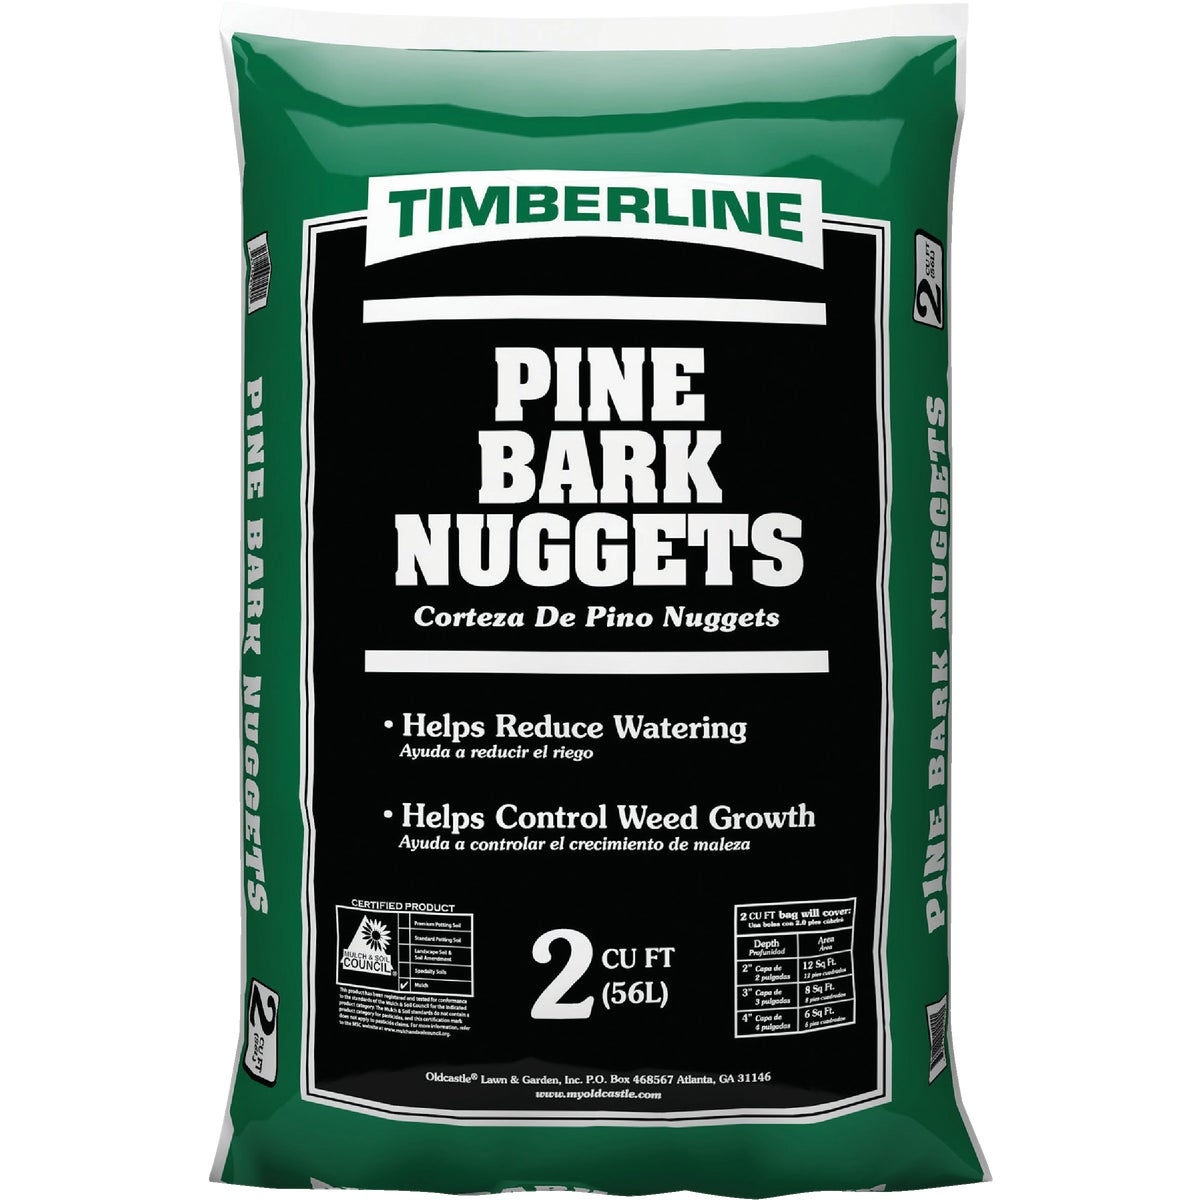 2CU FT PINE BARK NUGGETS - 52058084 by Old Castle Retail